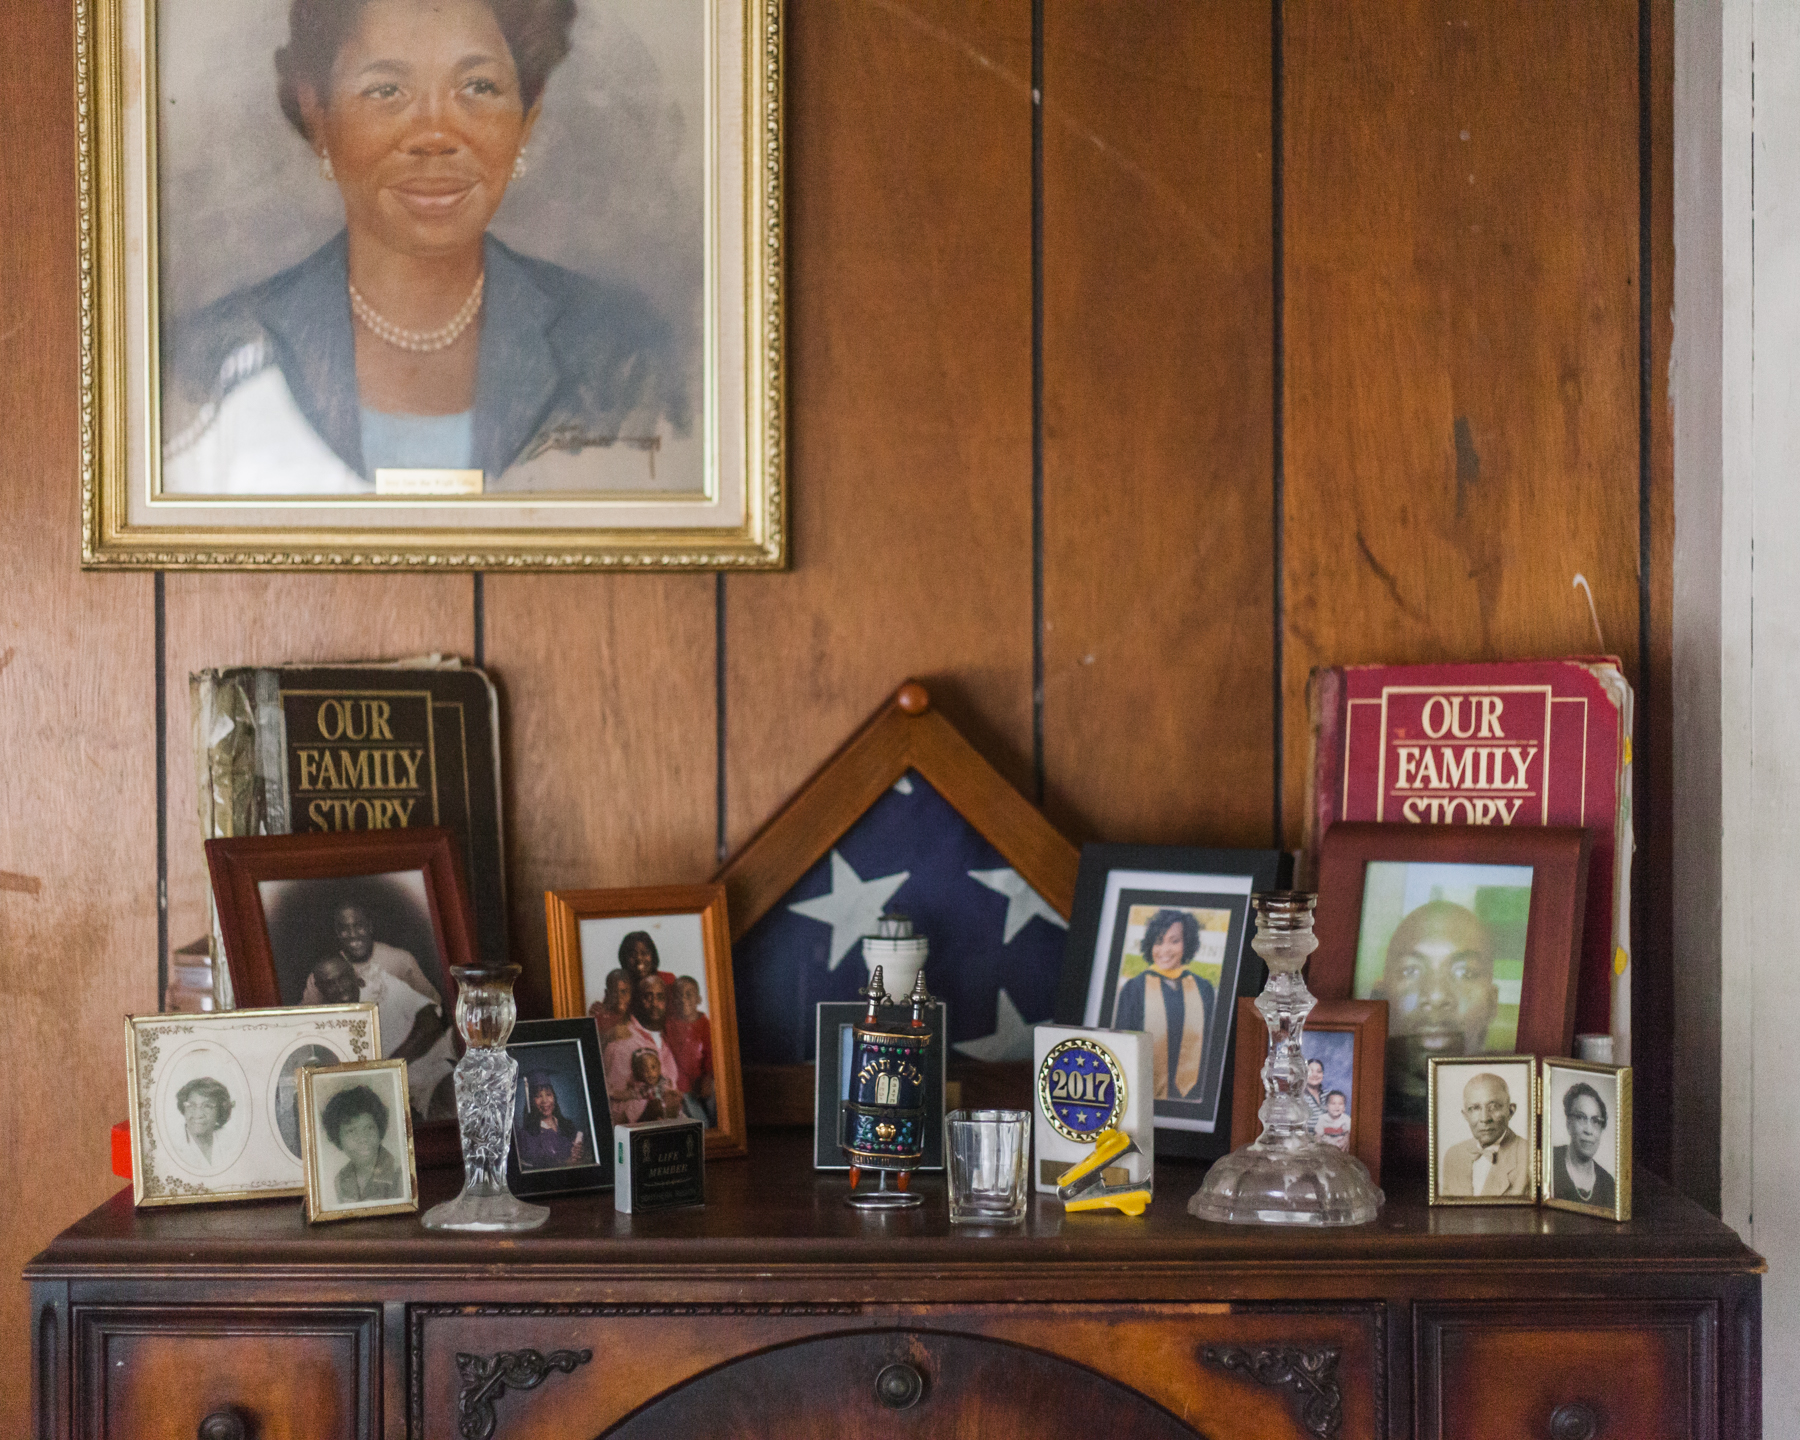 Dr. Collins is a history buff and keeps records, newspaper clippings, certificates, and other documents that he displays around his home. There are also many portraits of family members; pictured here is his aunt who raised him.